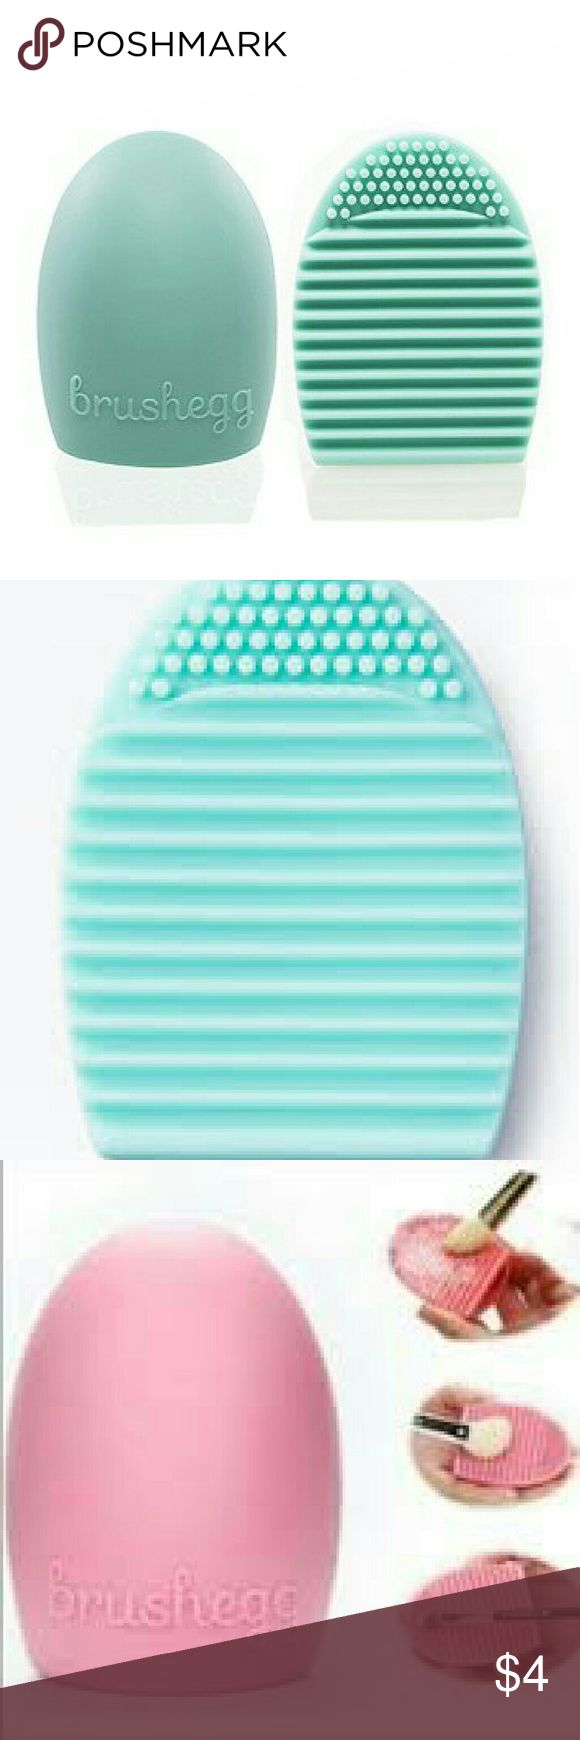 New Light blue Brush Egg Makeup Brush Cleaner Brand new Brush Egg makeup brush cleaner in light blue. Gently and effectively cleans brushes without damaging the bristles. To use, simply wet the brush and apply a gentle brush cleaner or baby shampoo. Lightly  rub the brush bristles against the textured side of the Brush Egg and rinse until bristles are clean. Brush egg may be slipped over the fingers or held in the palm of the hand,  depending on your preference. Also available in pink in my…